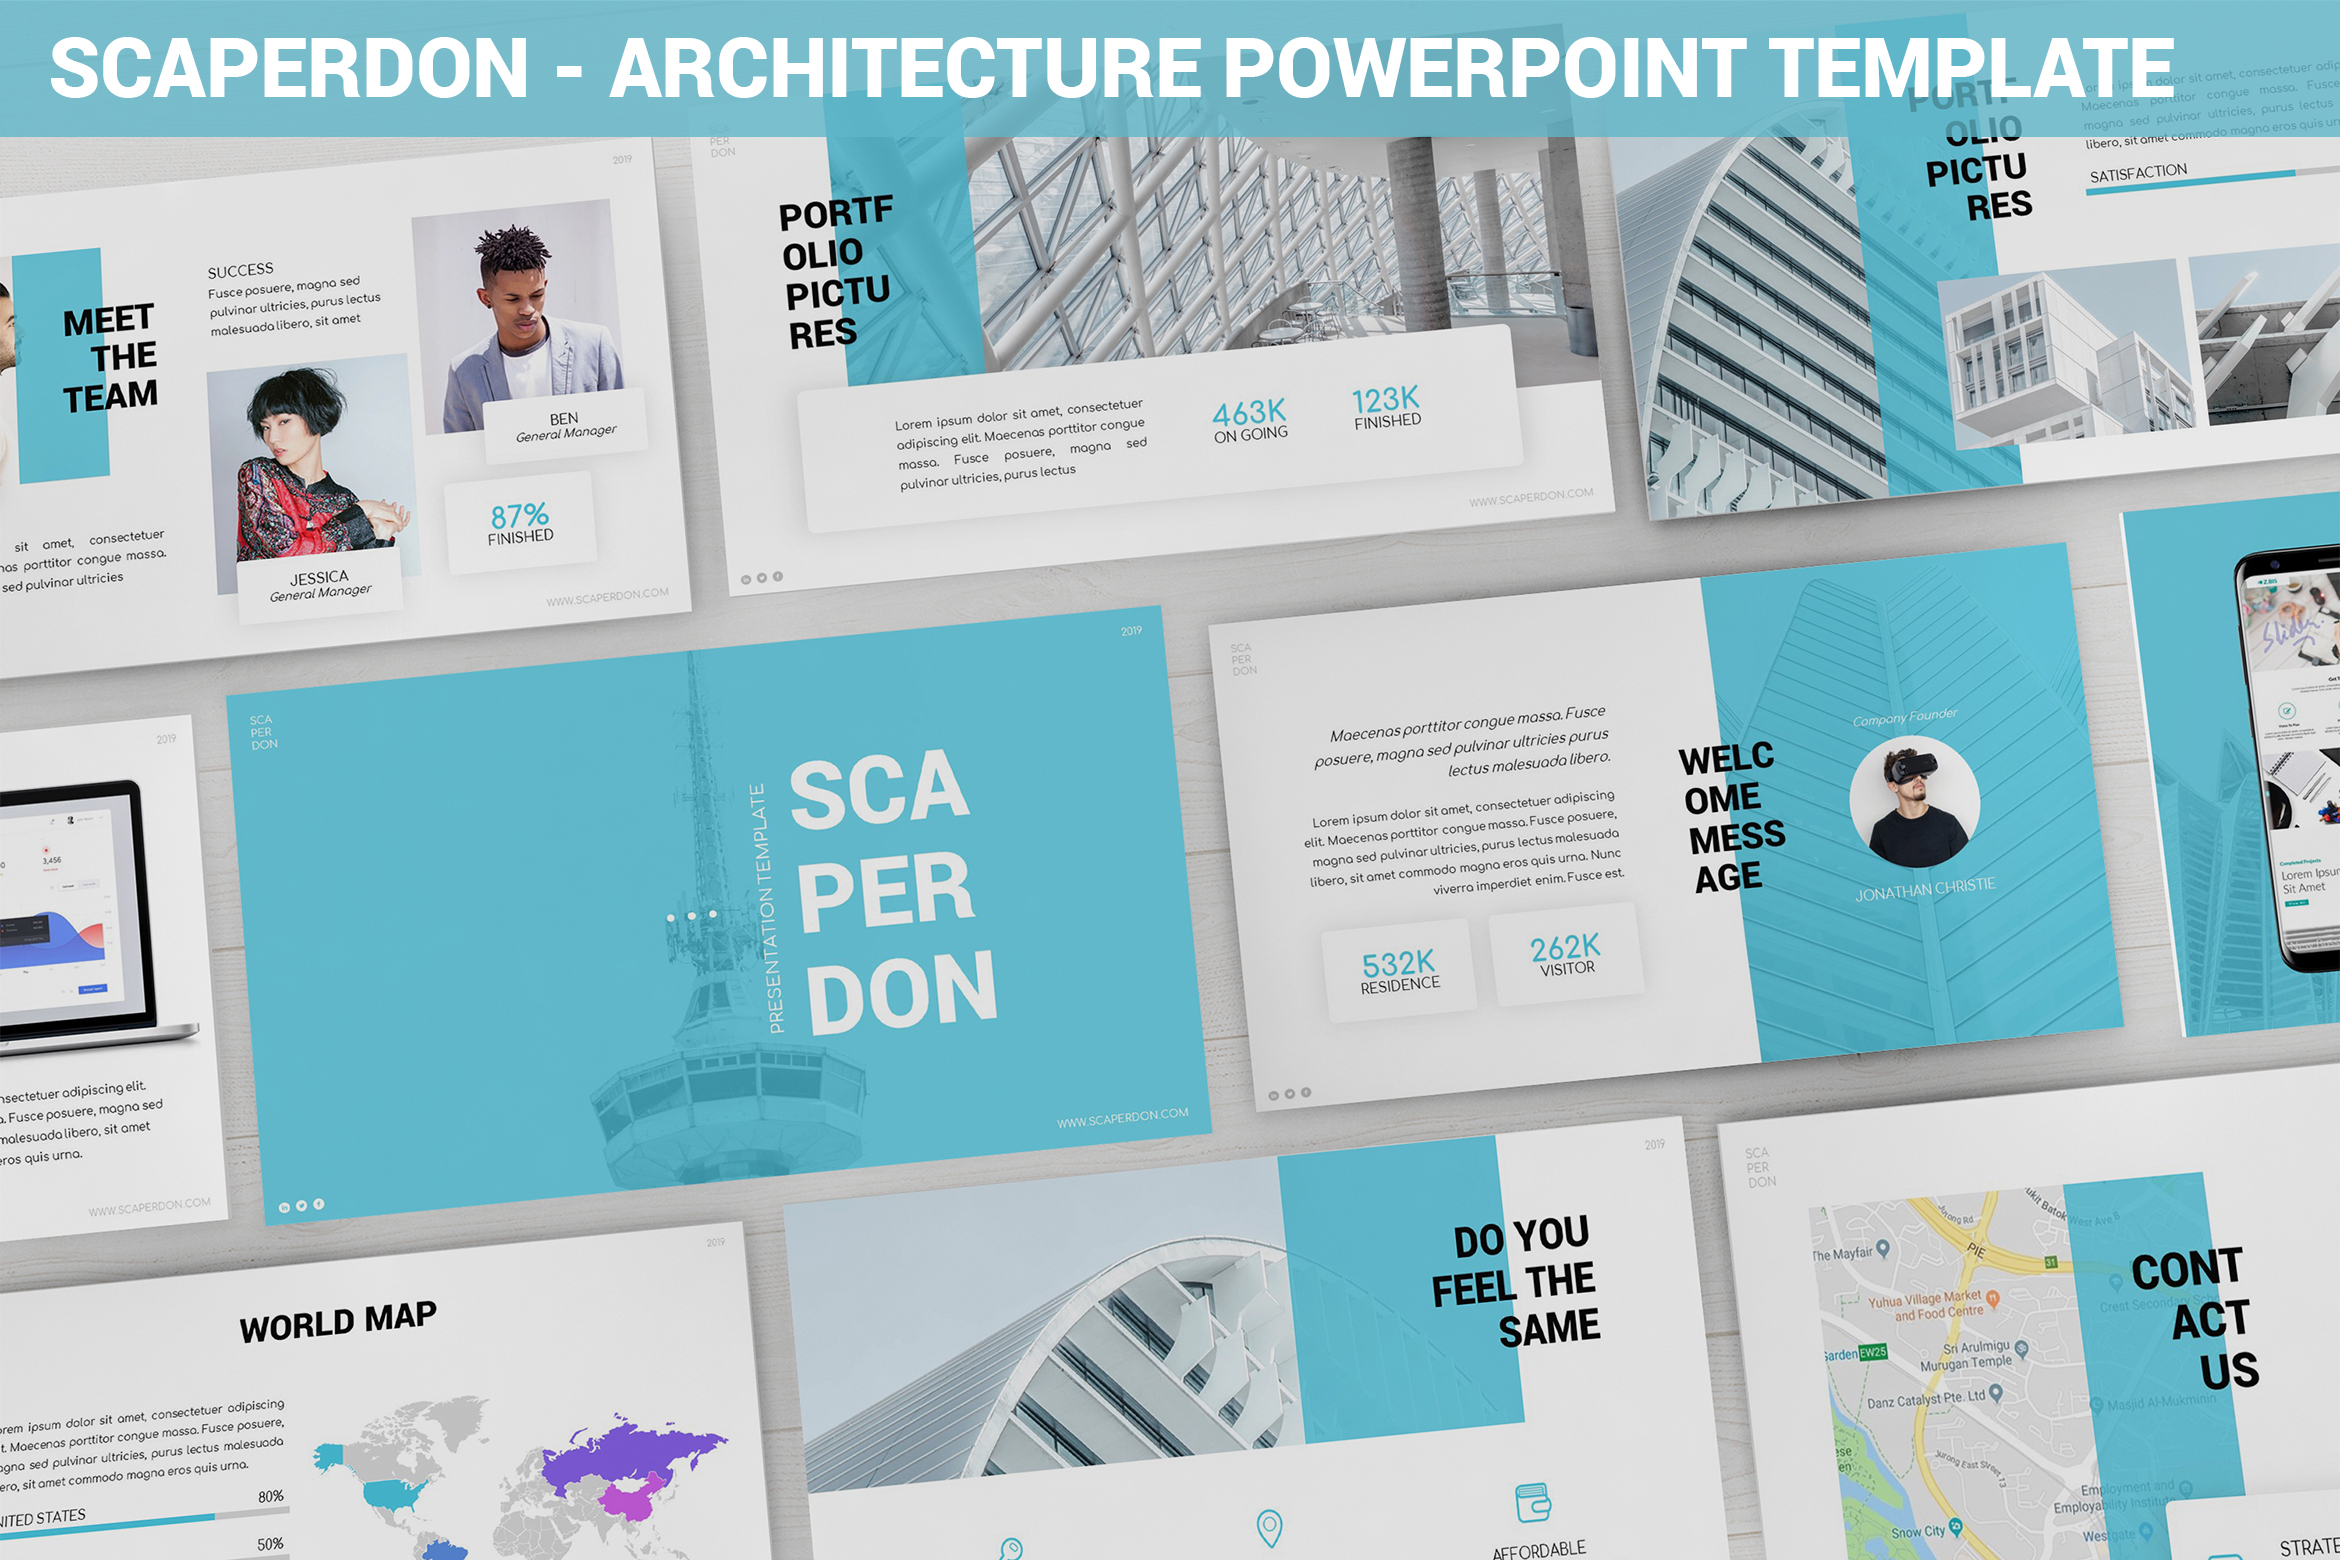 Scaperdon - Architecture Powerpoint Template example image 1